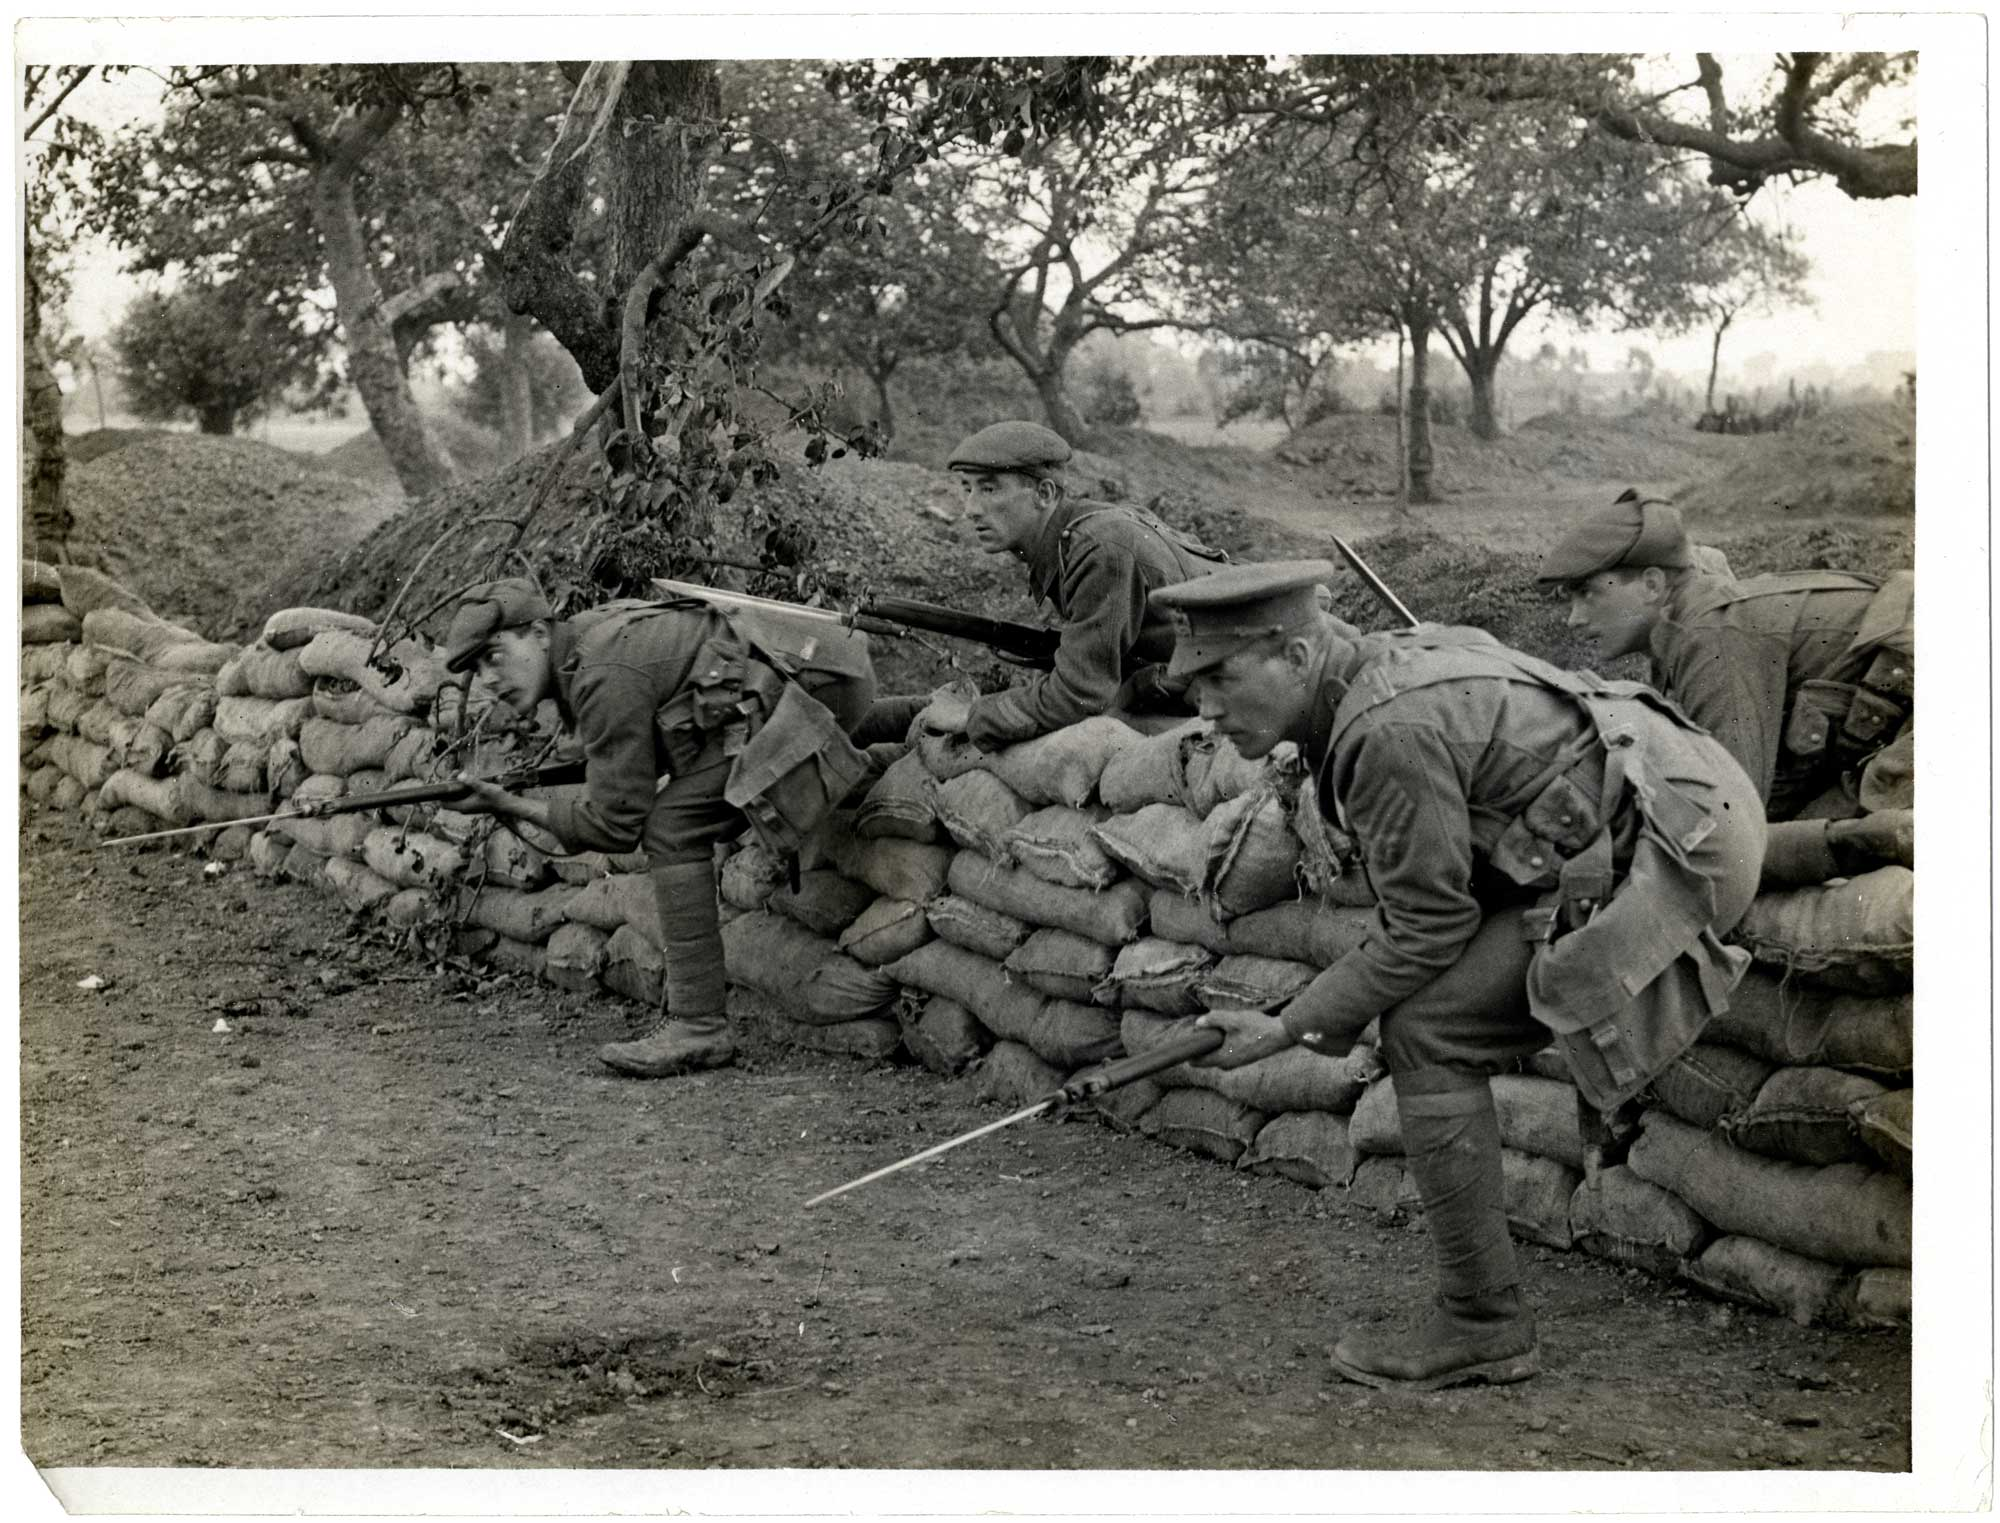 A photograph from 1914-15 of British troops leaving a shallow trench built up with sandbags, probably during a training exercise.